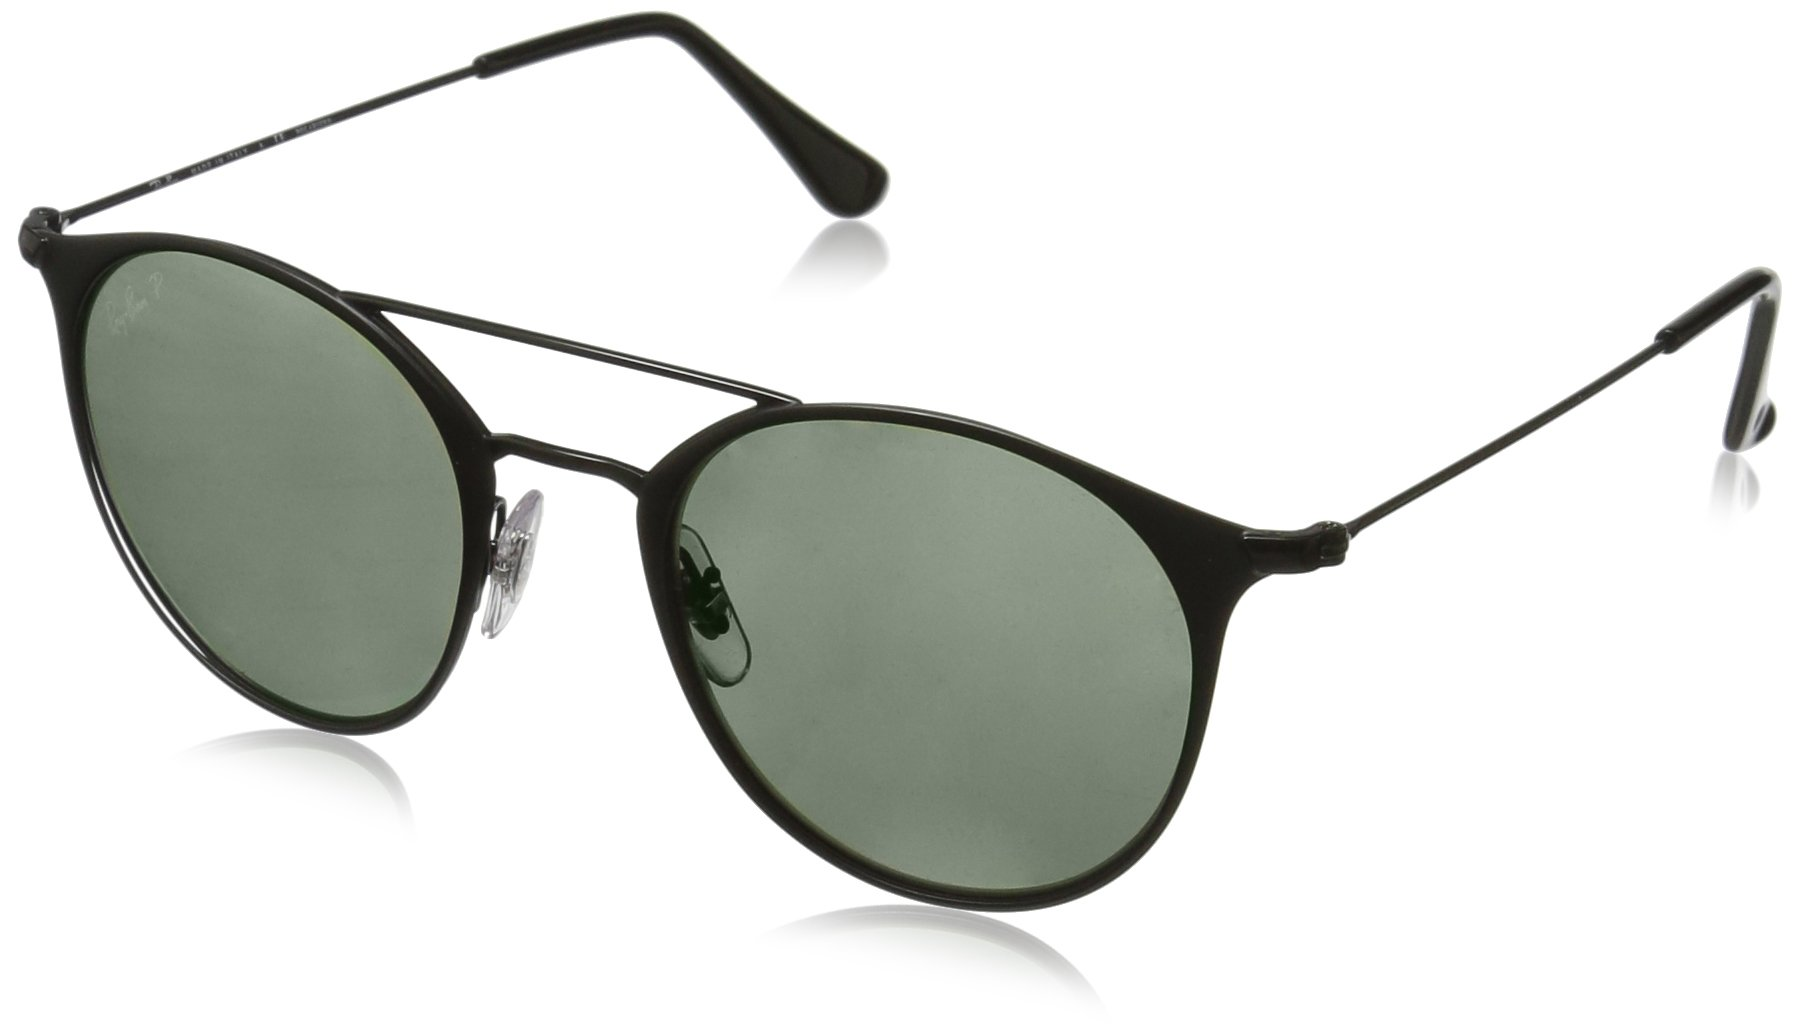 Ray-Ban Steel Unisex Polarized Round Sunglasses, Black Top Matte Black, 49 mm